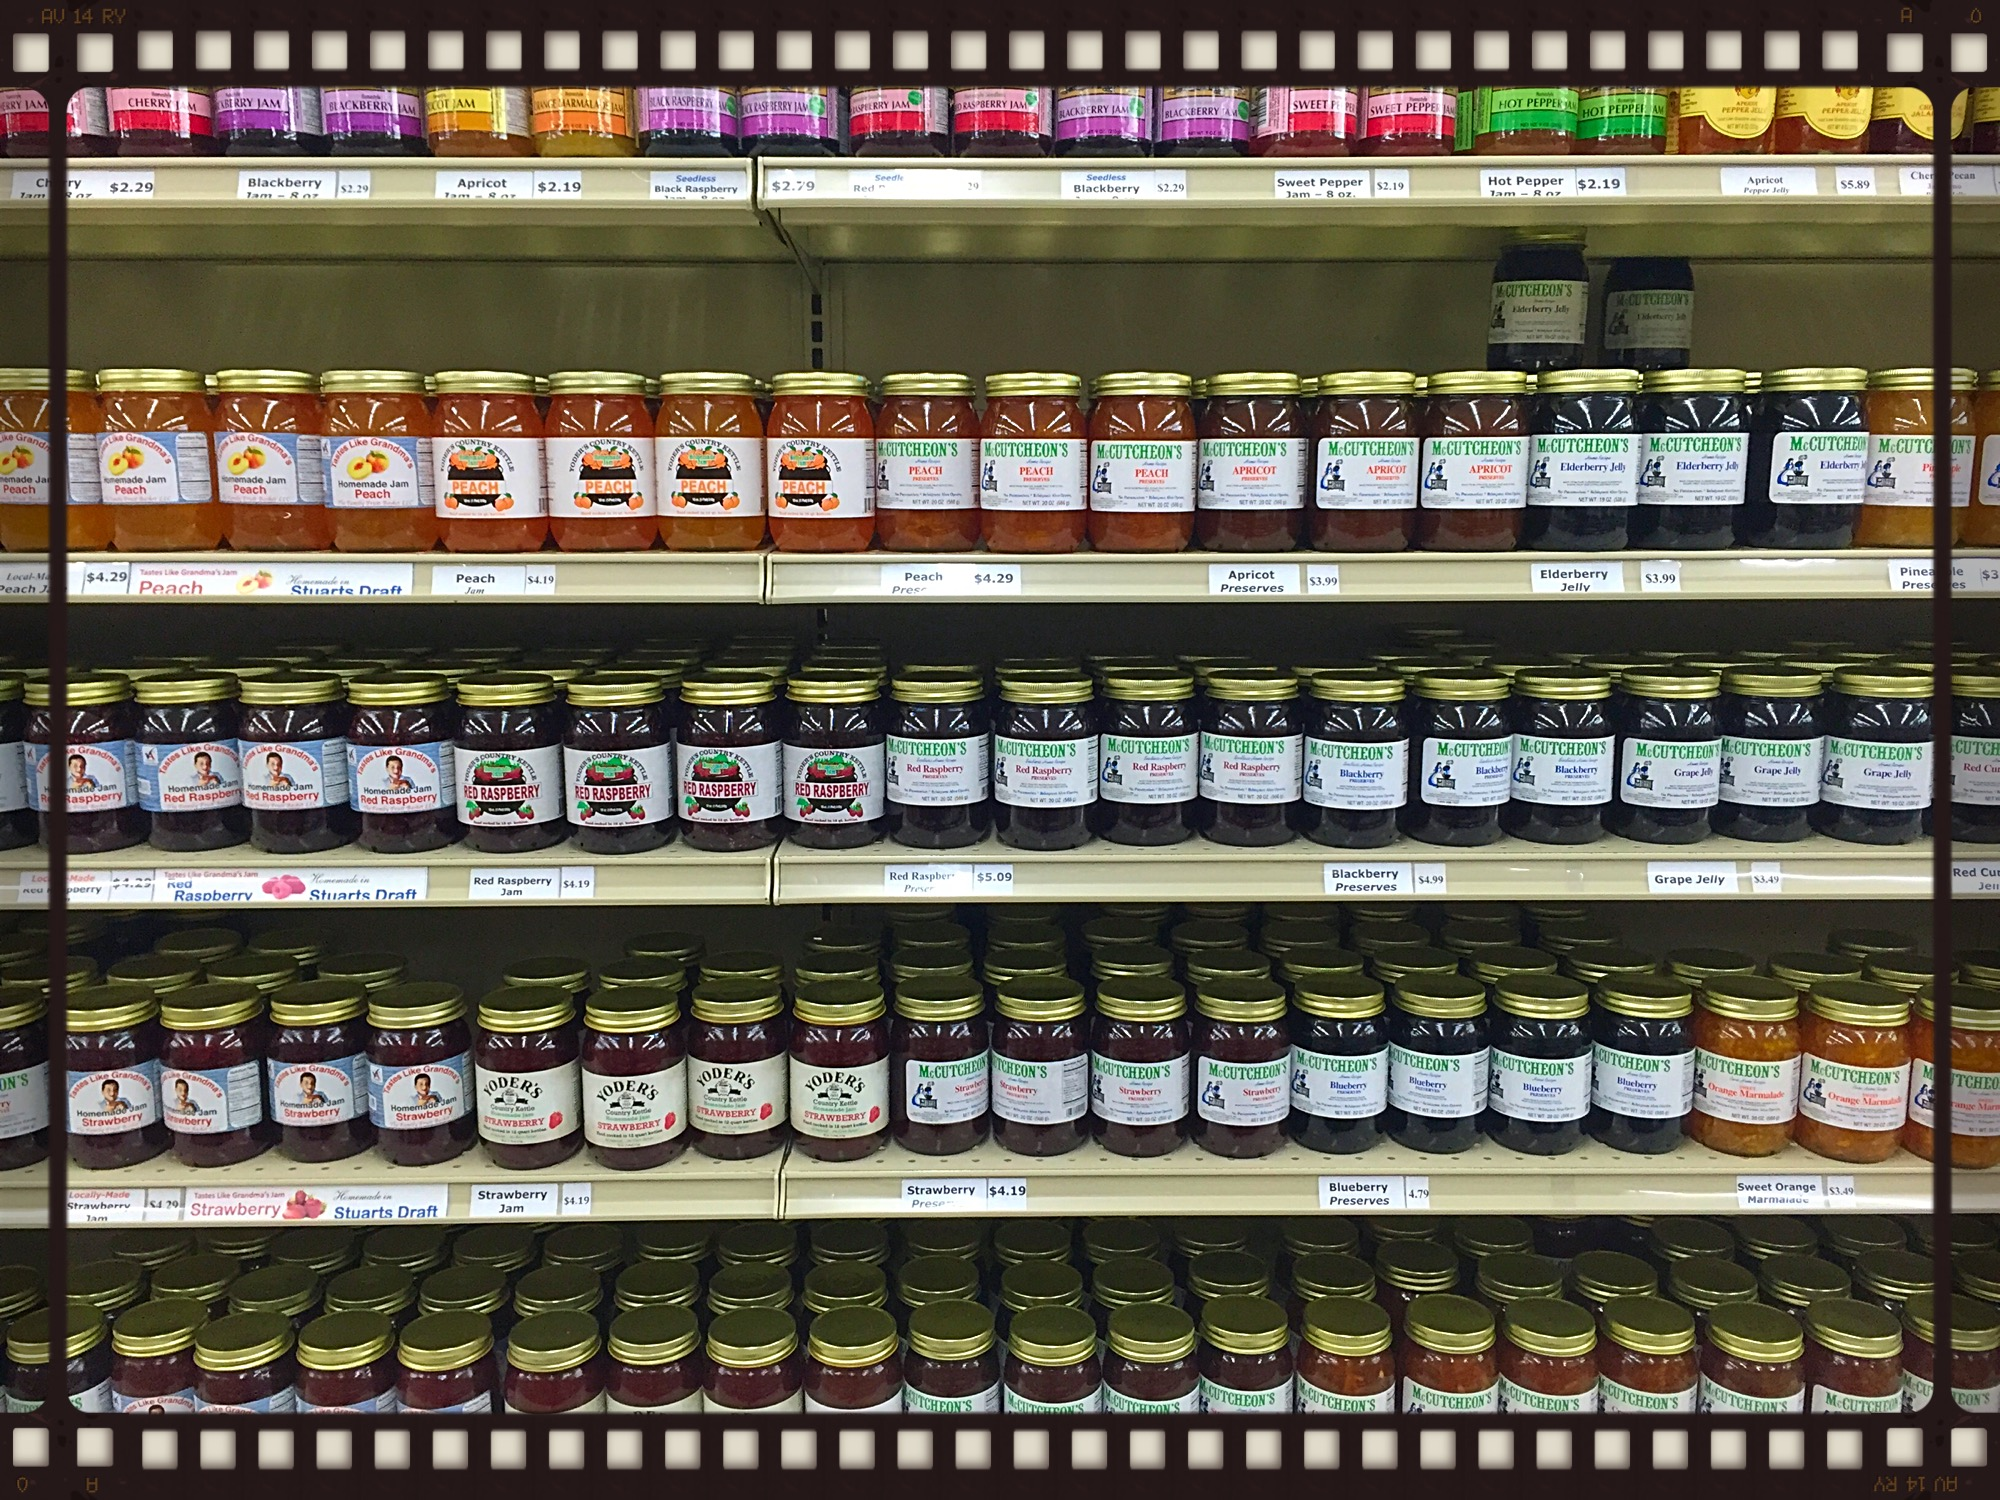 Jams Selection at The Cheese Shop